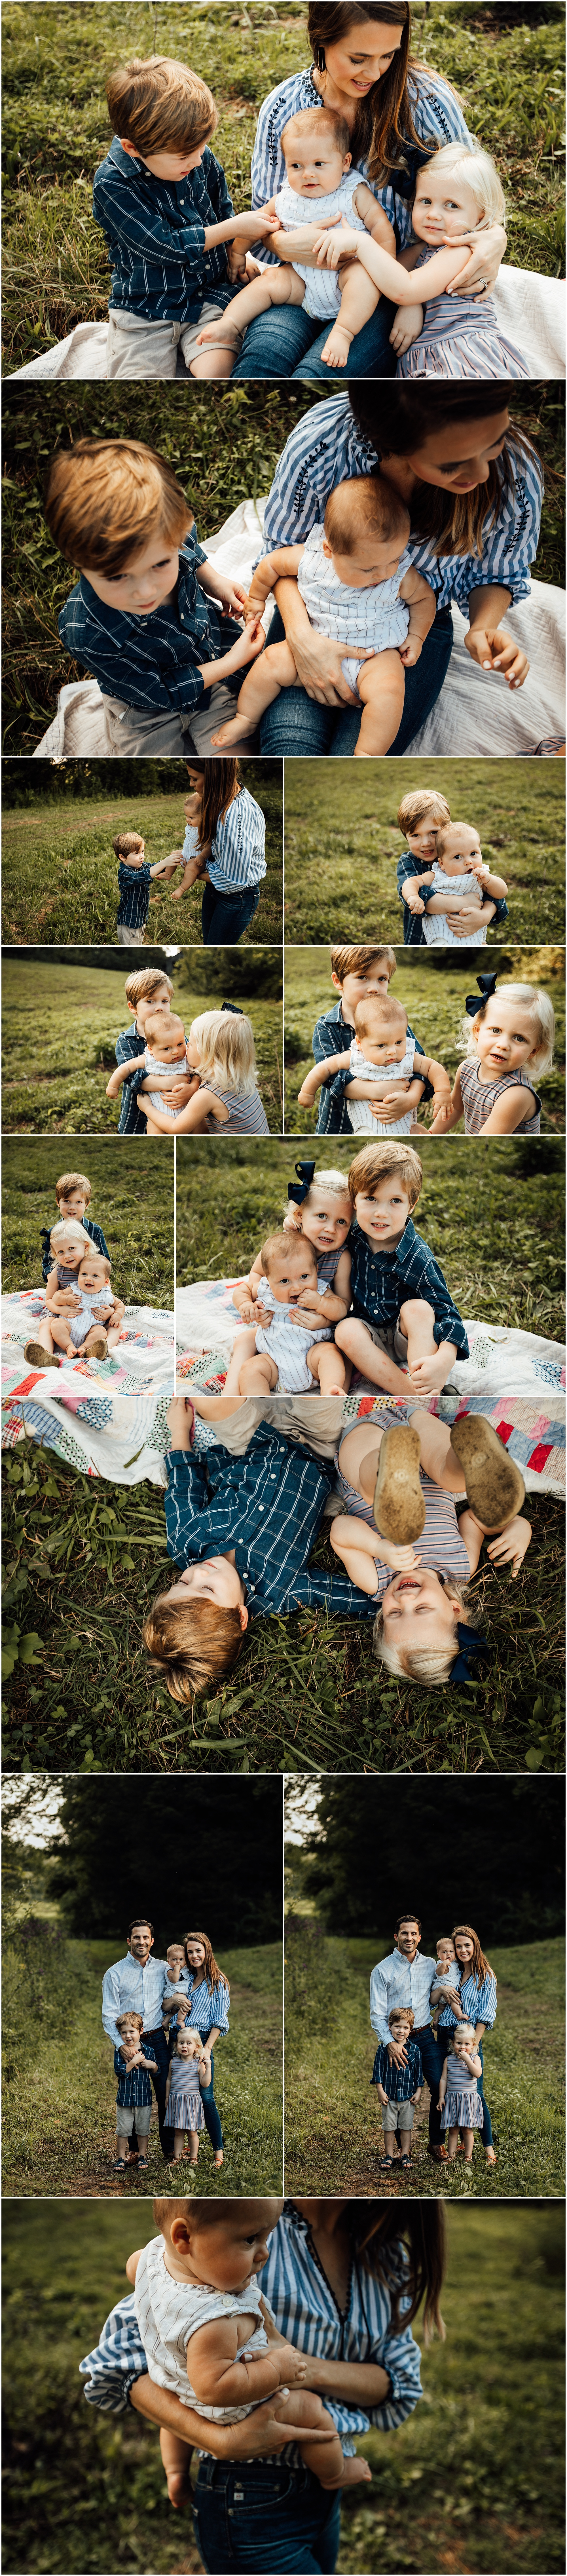 Huntsville Alabama family of 5 outdoor farm session by Rachel K Photo